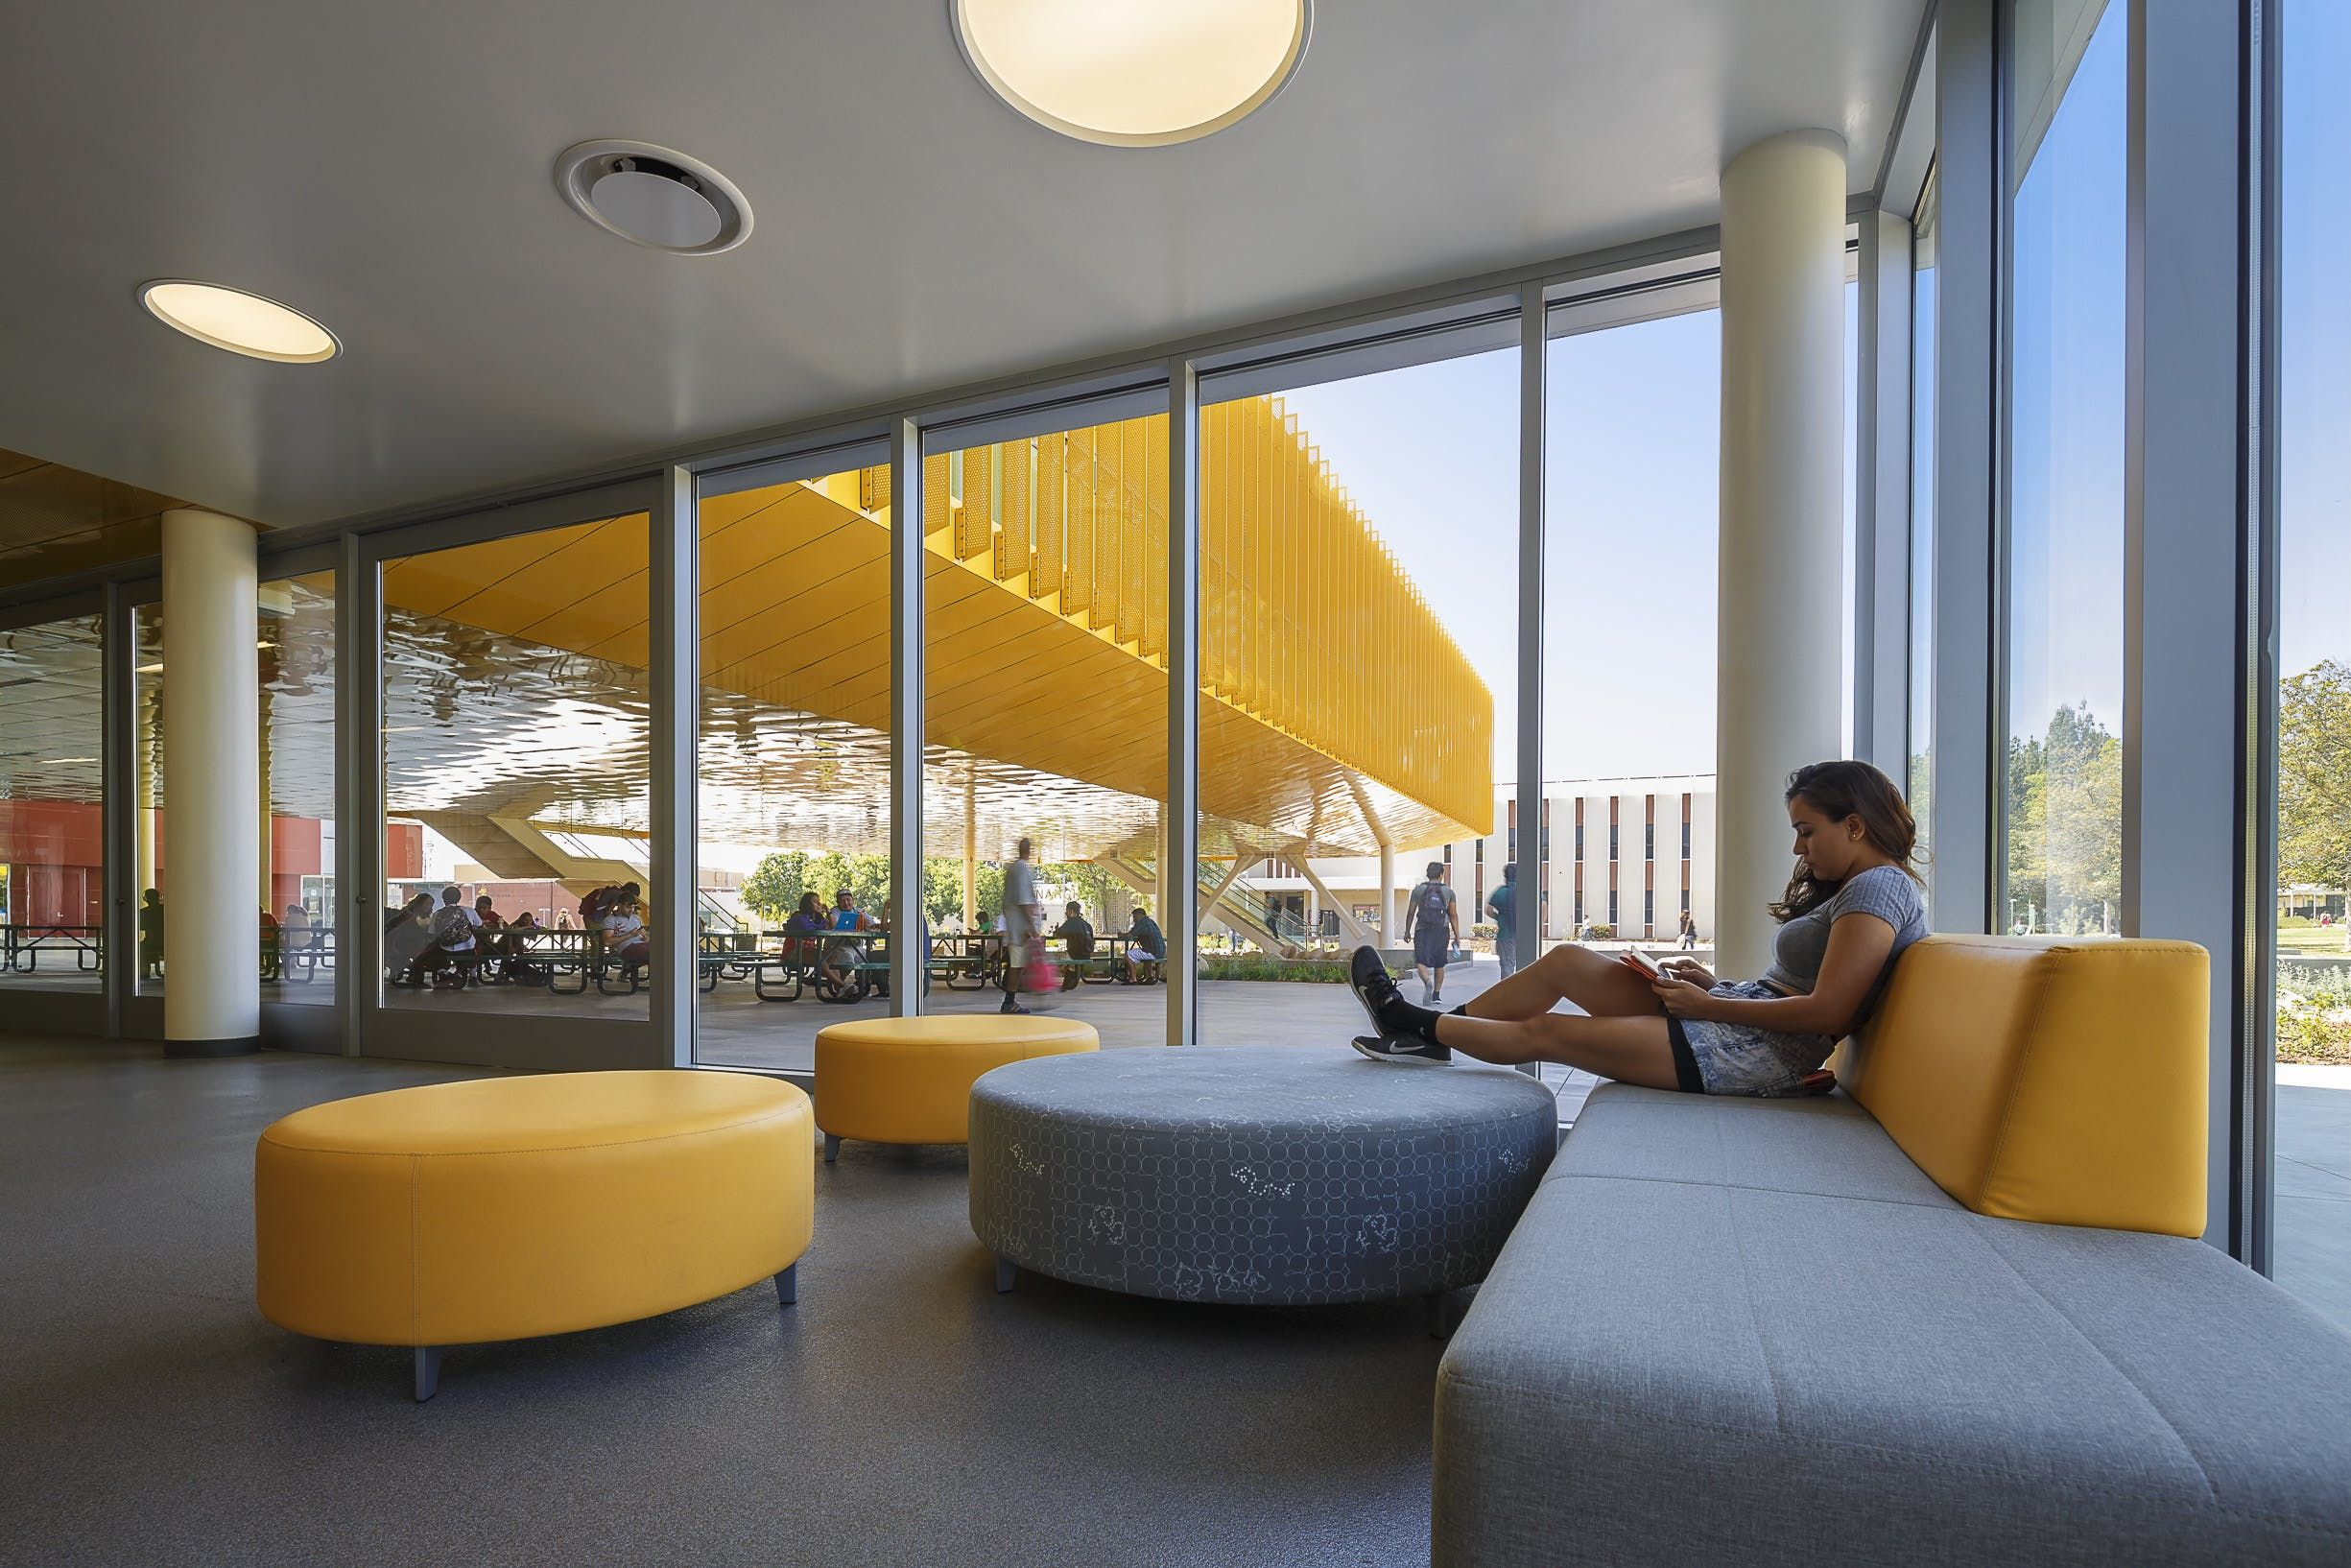 Student Center Design Completed At Los Angeles Valley College Lpa Inc Student Center Valley College Design